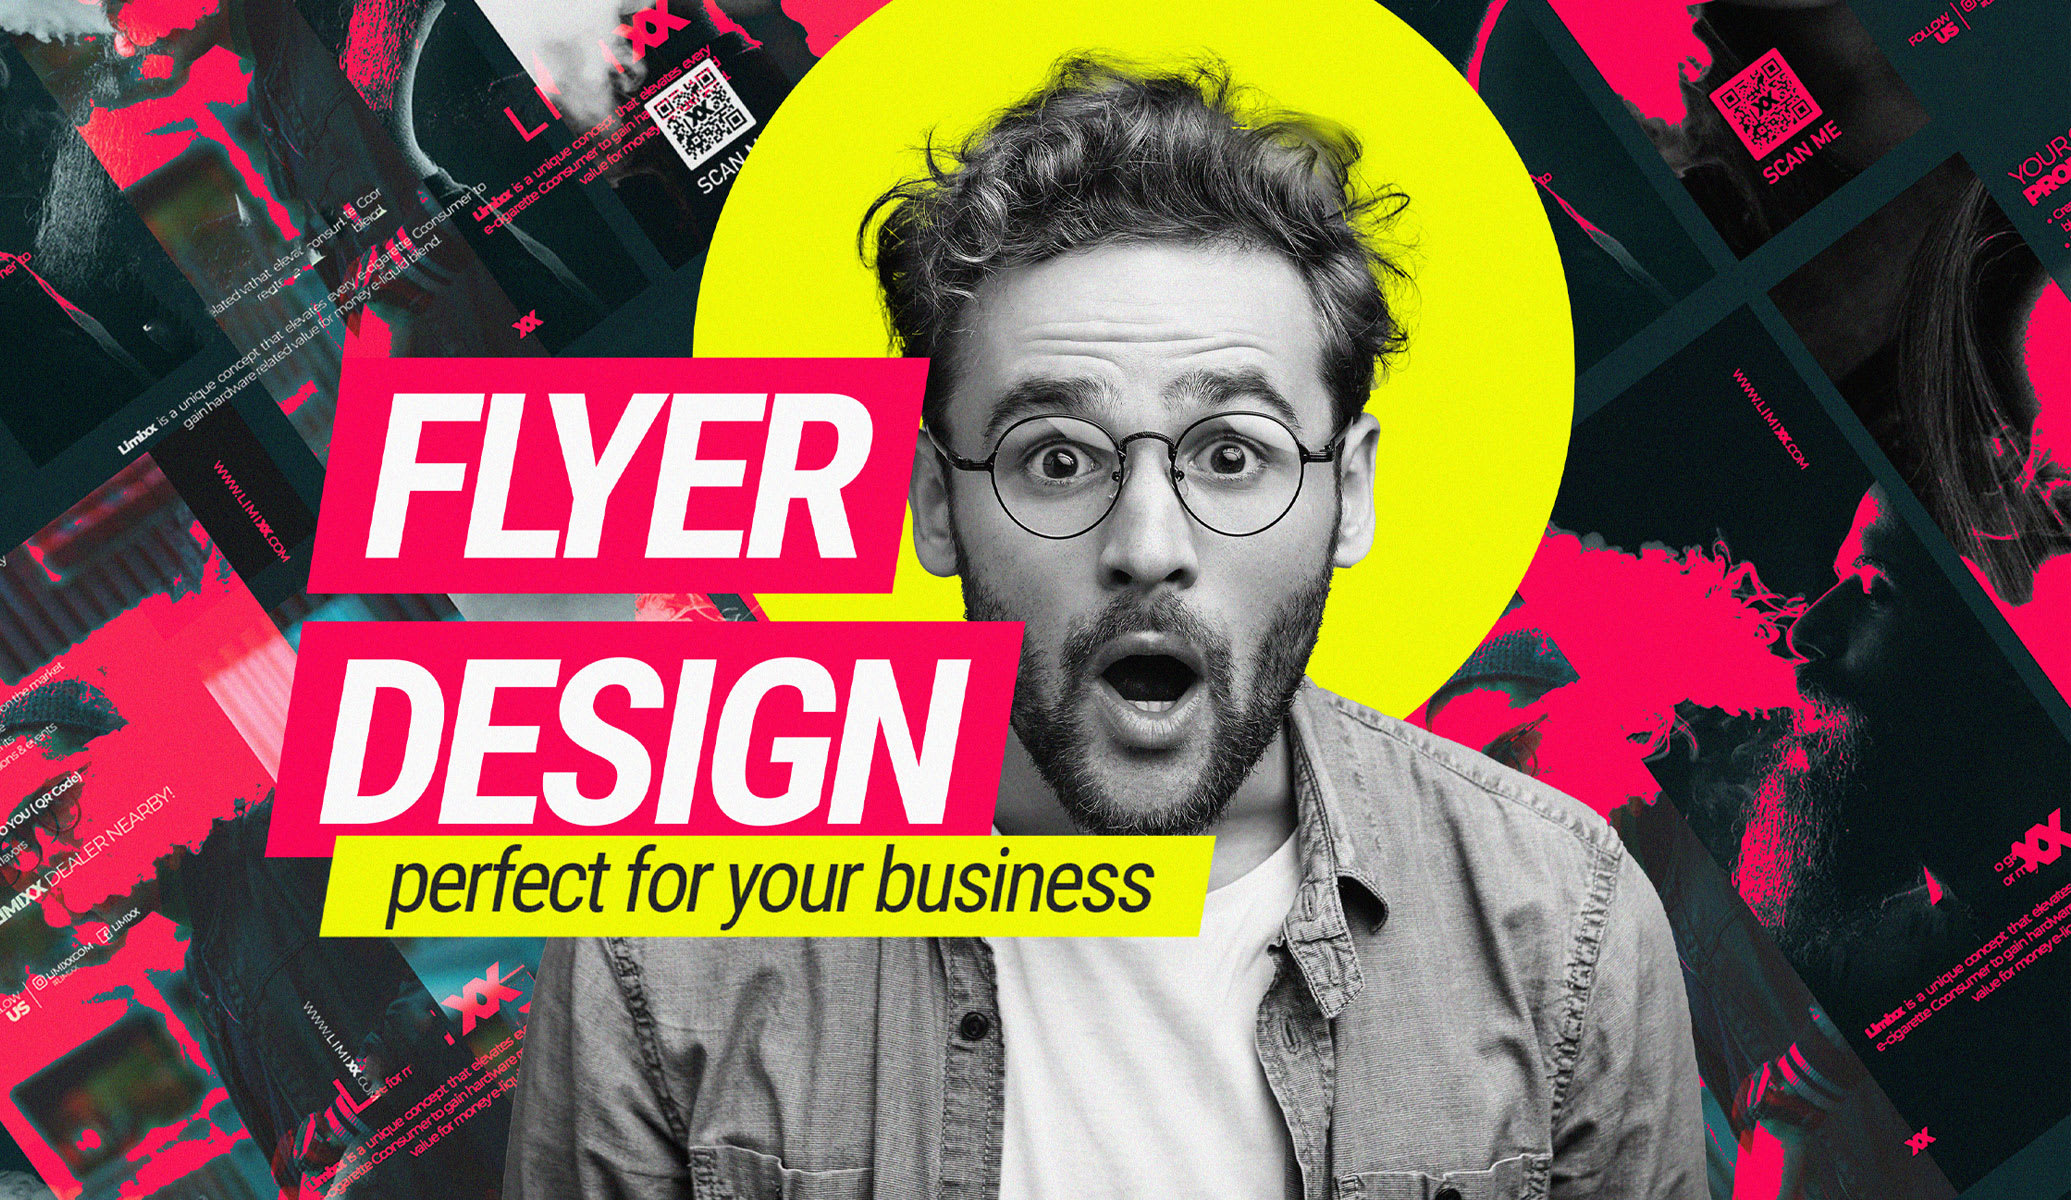 I will design a professional flyer for your business in 12 hours